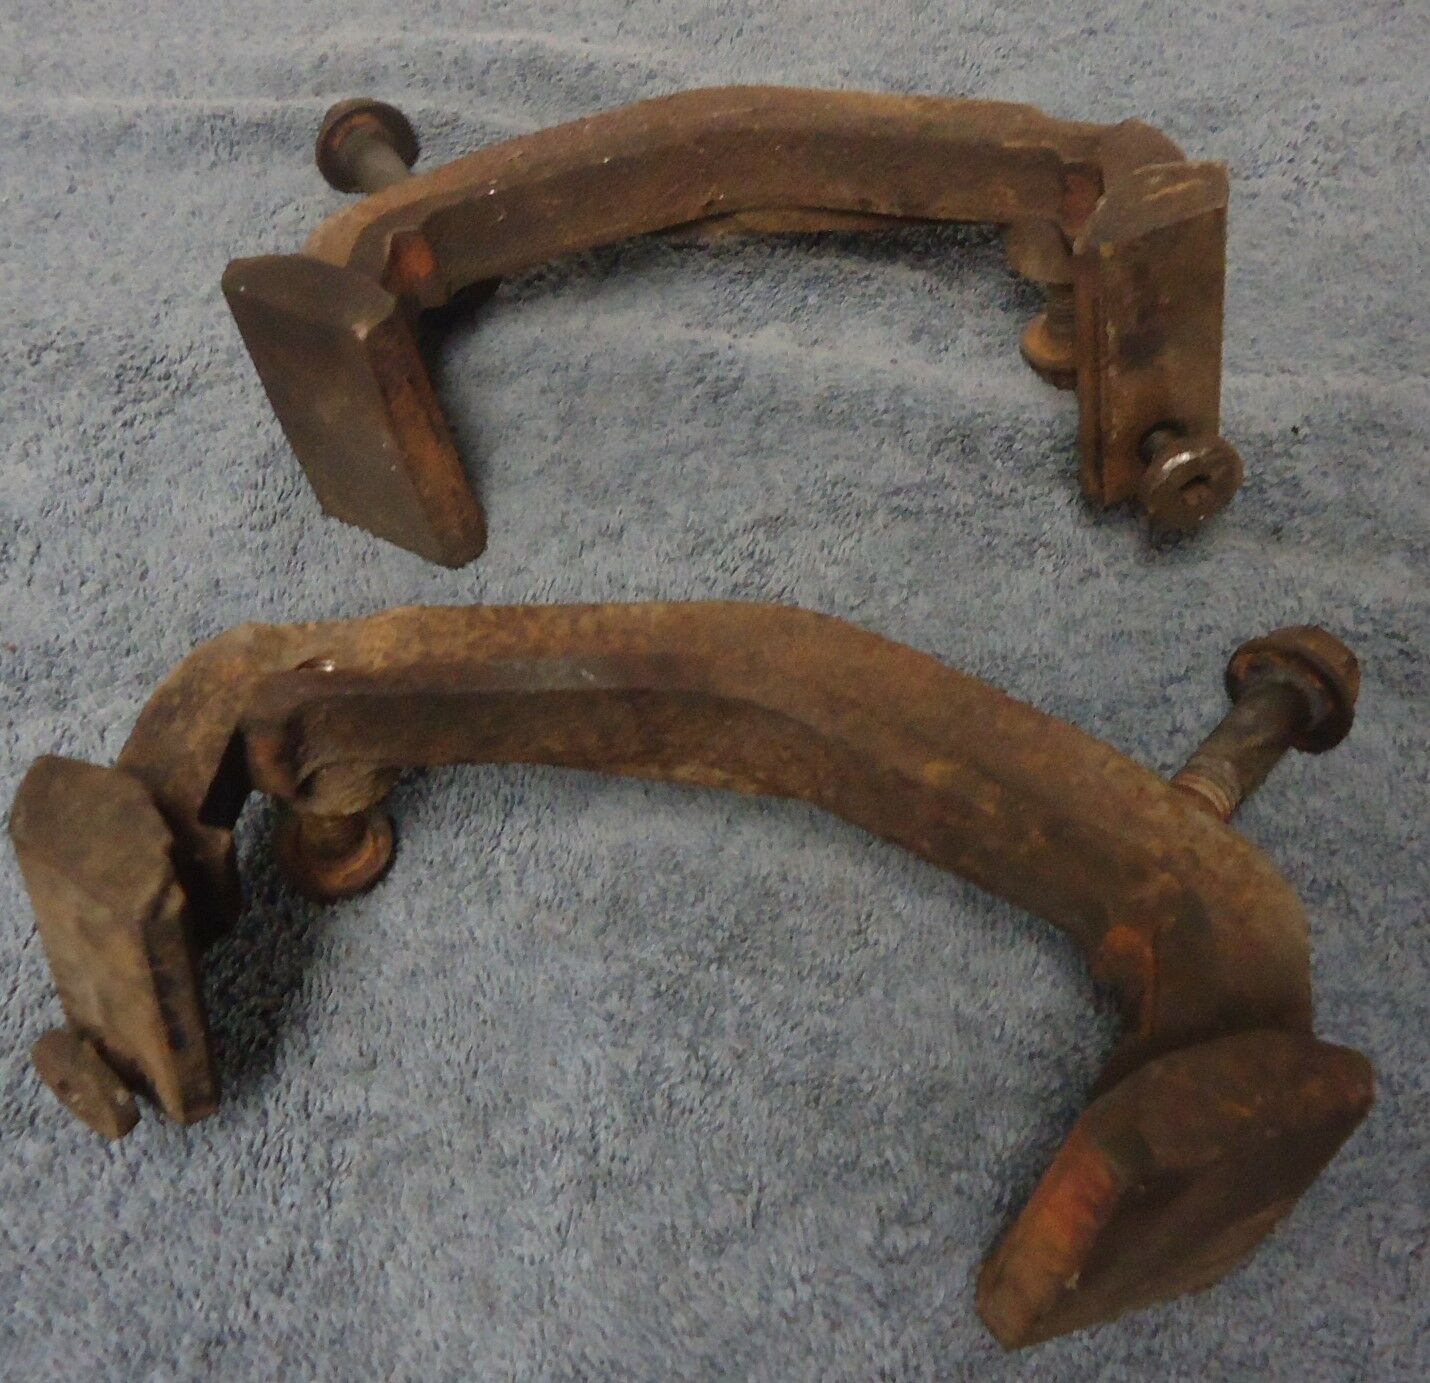 Used Shelby Brakes & Brake Parts for Sale - Page 8